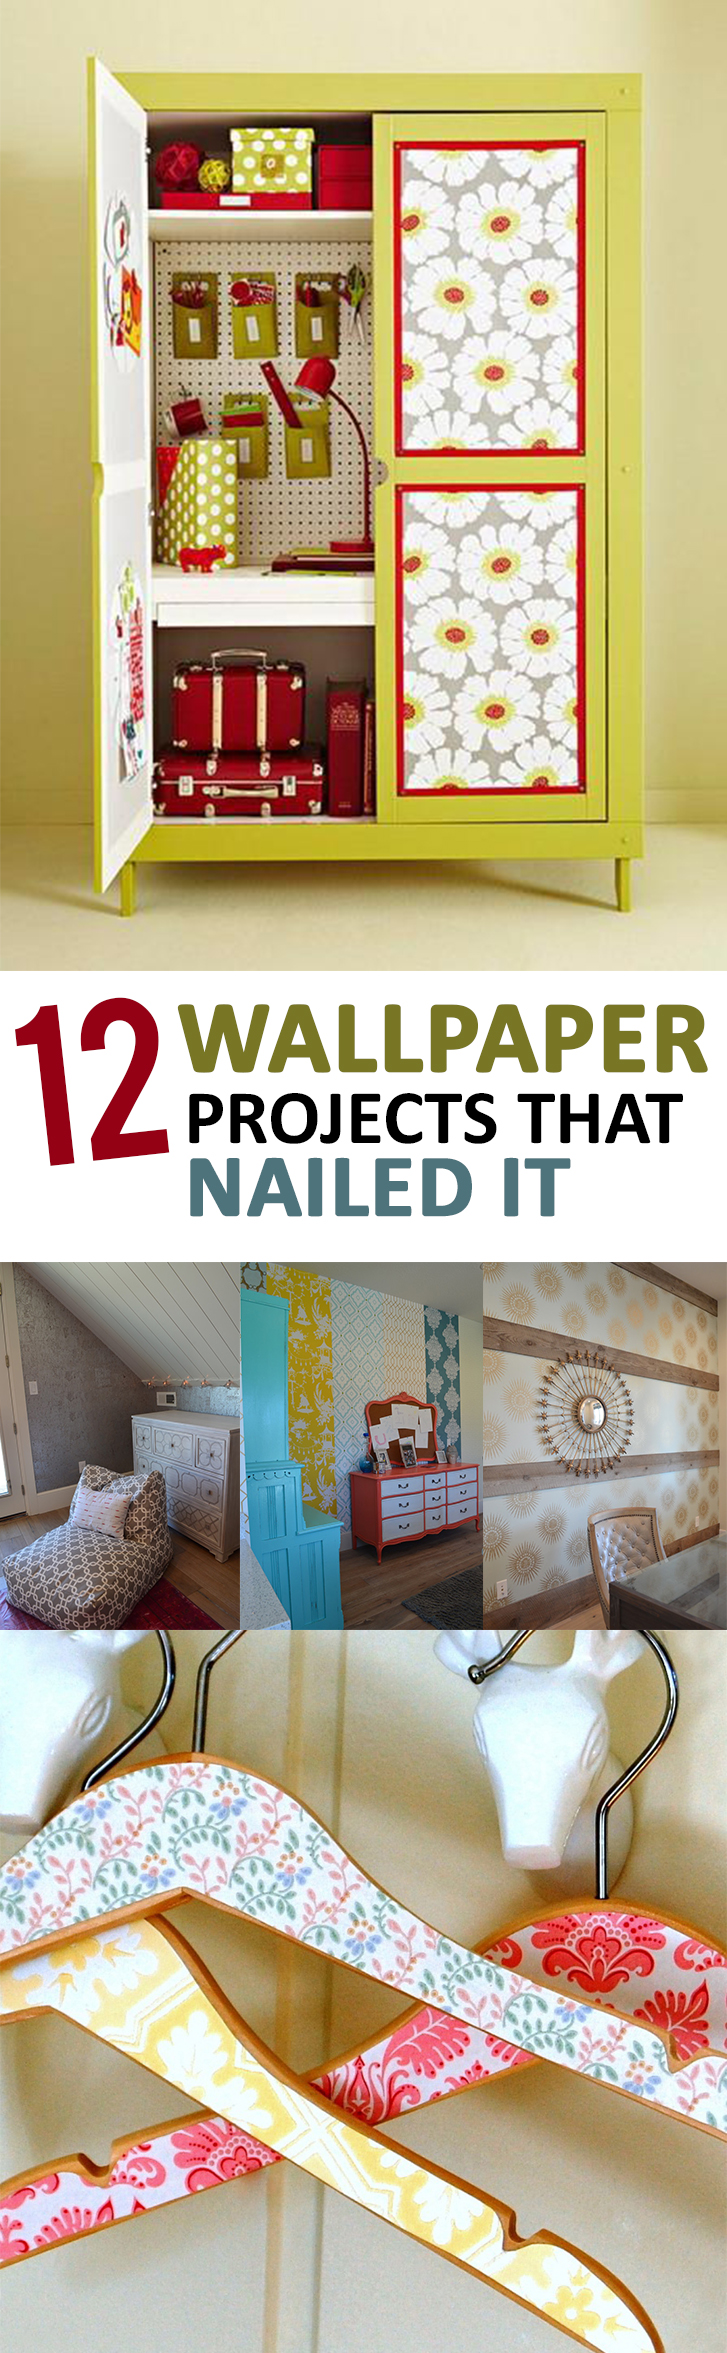 12 Wallpaper Projects That Nailed It